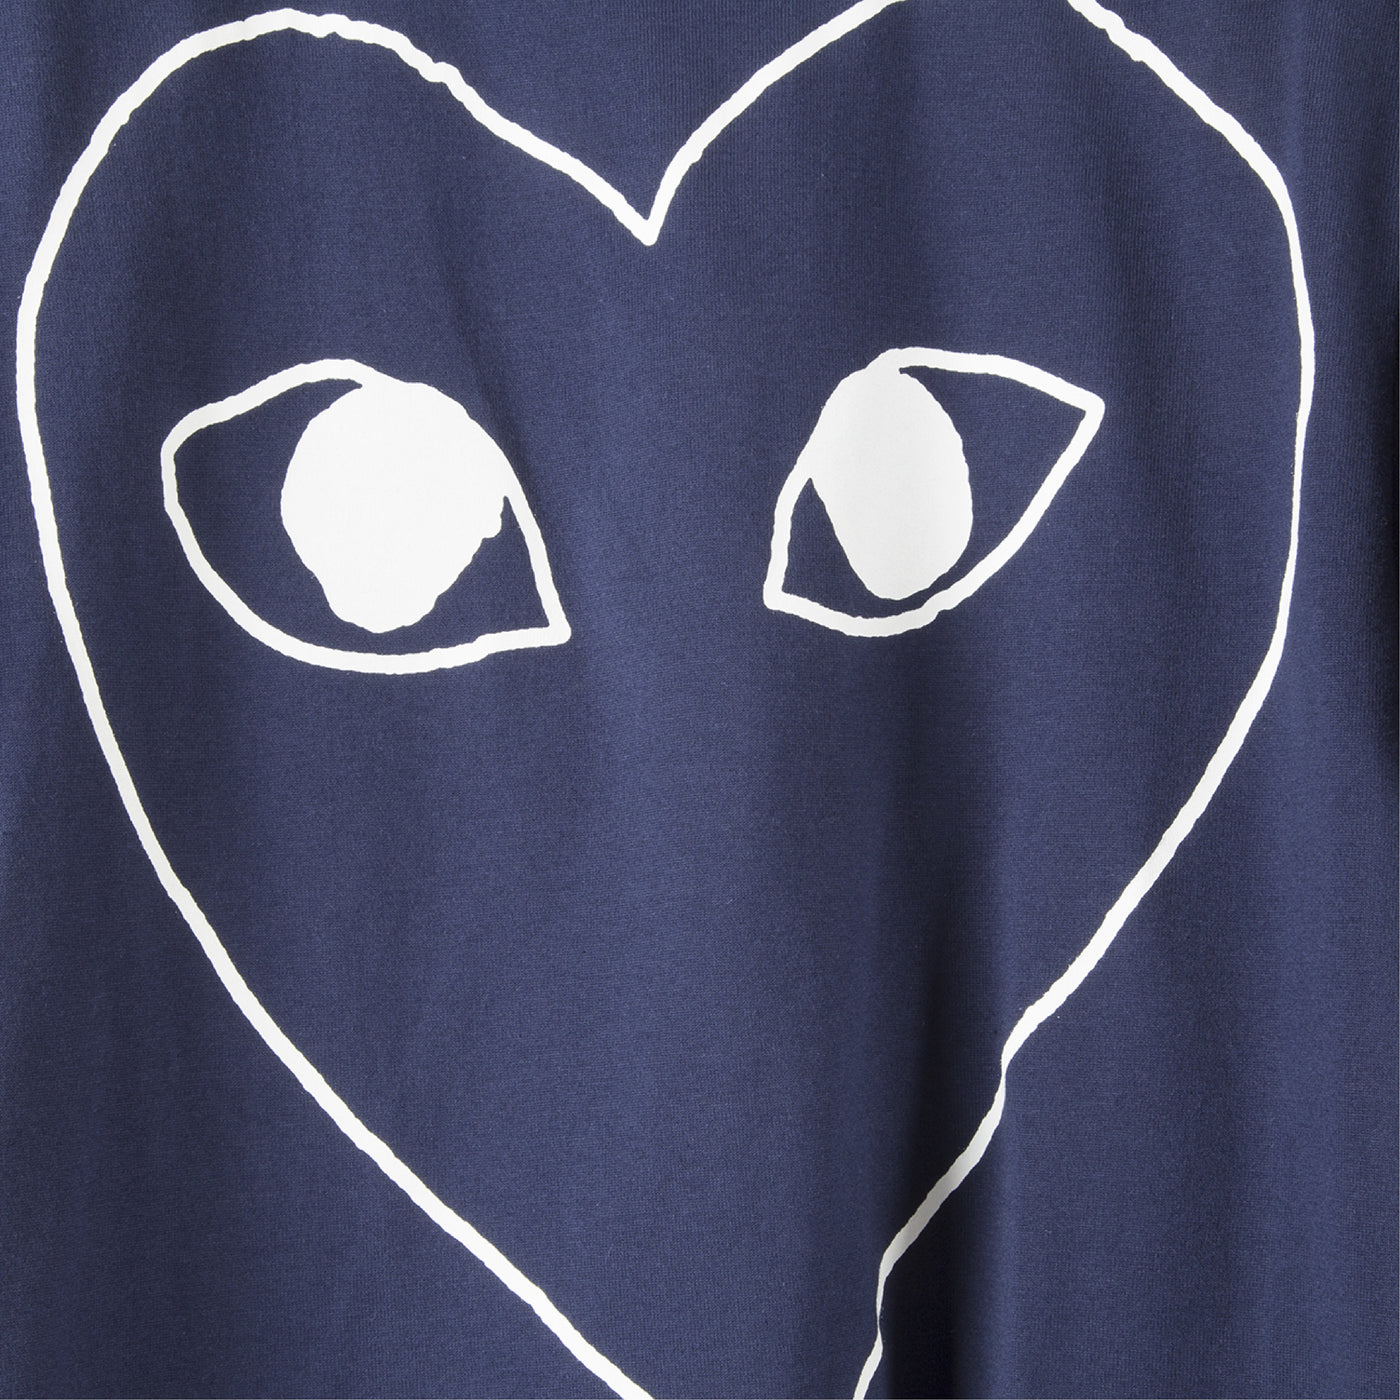 Load image into Gallery viewer, COMME DES GARCONS PLAY HEART T-SHIRT NAVY